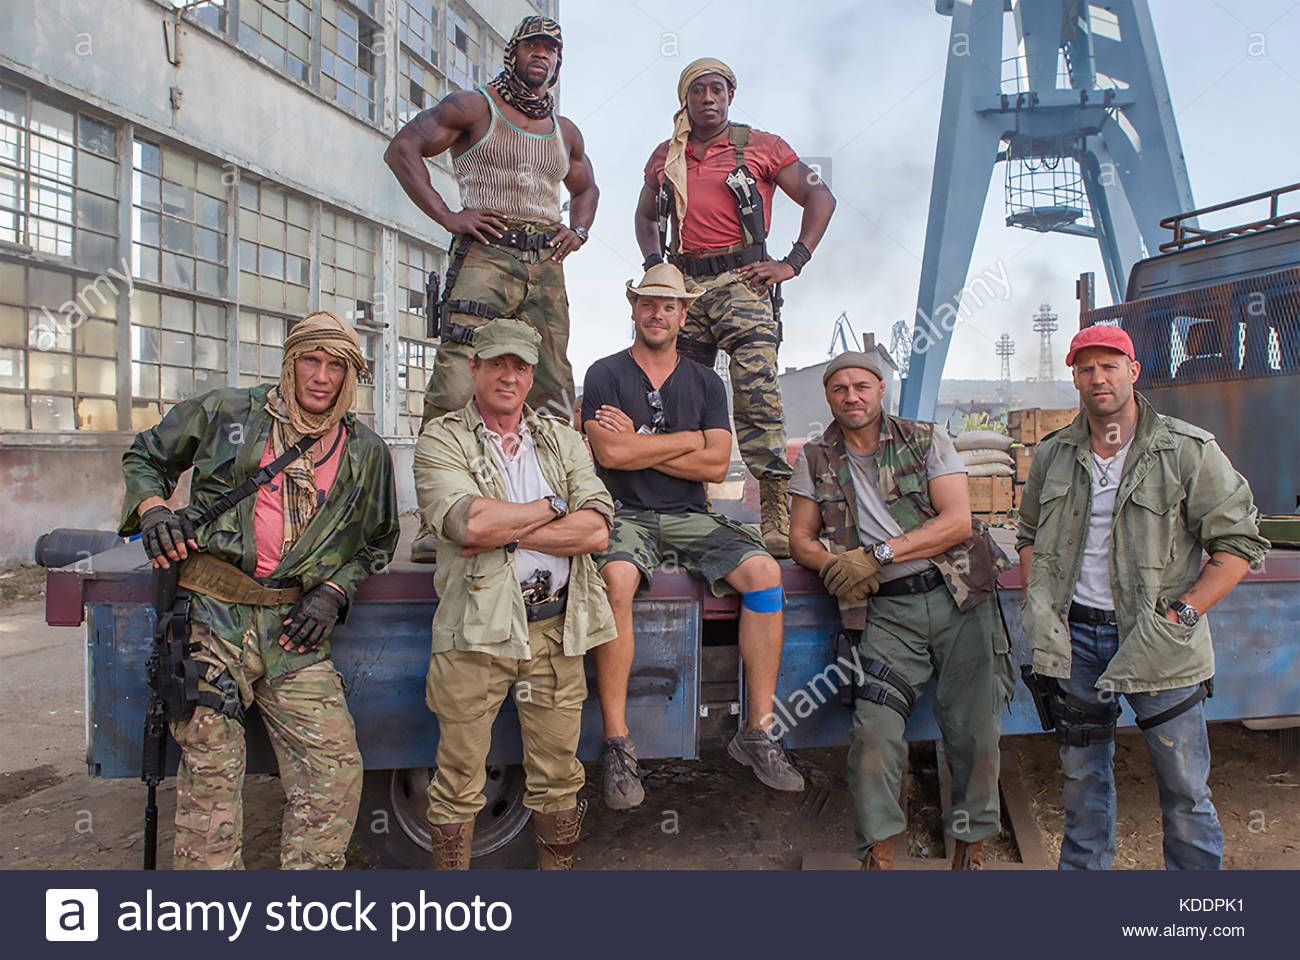 THE EXPENDABLES 3 - 2014 Lionsgate film - Stock Image